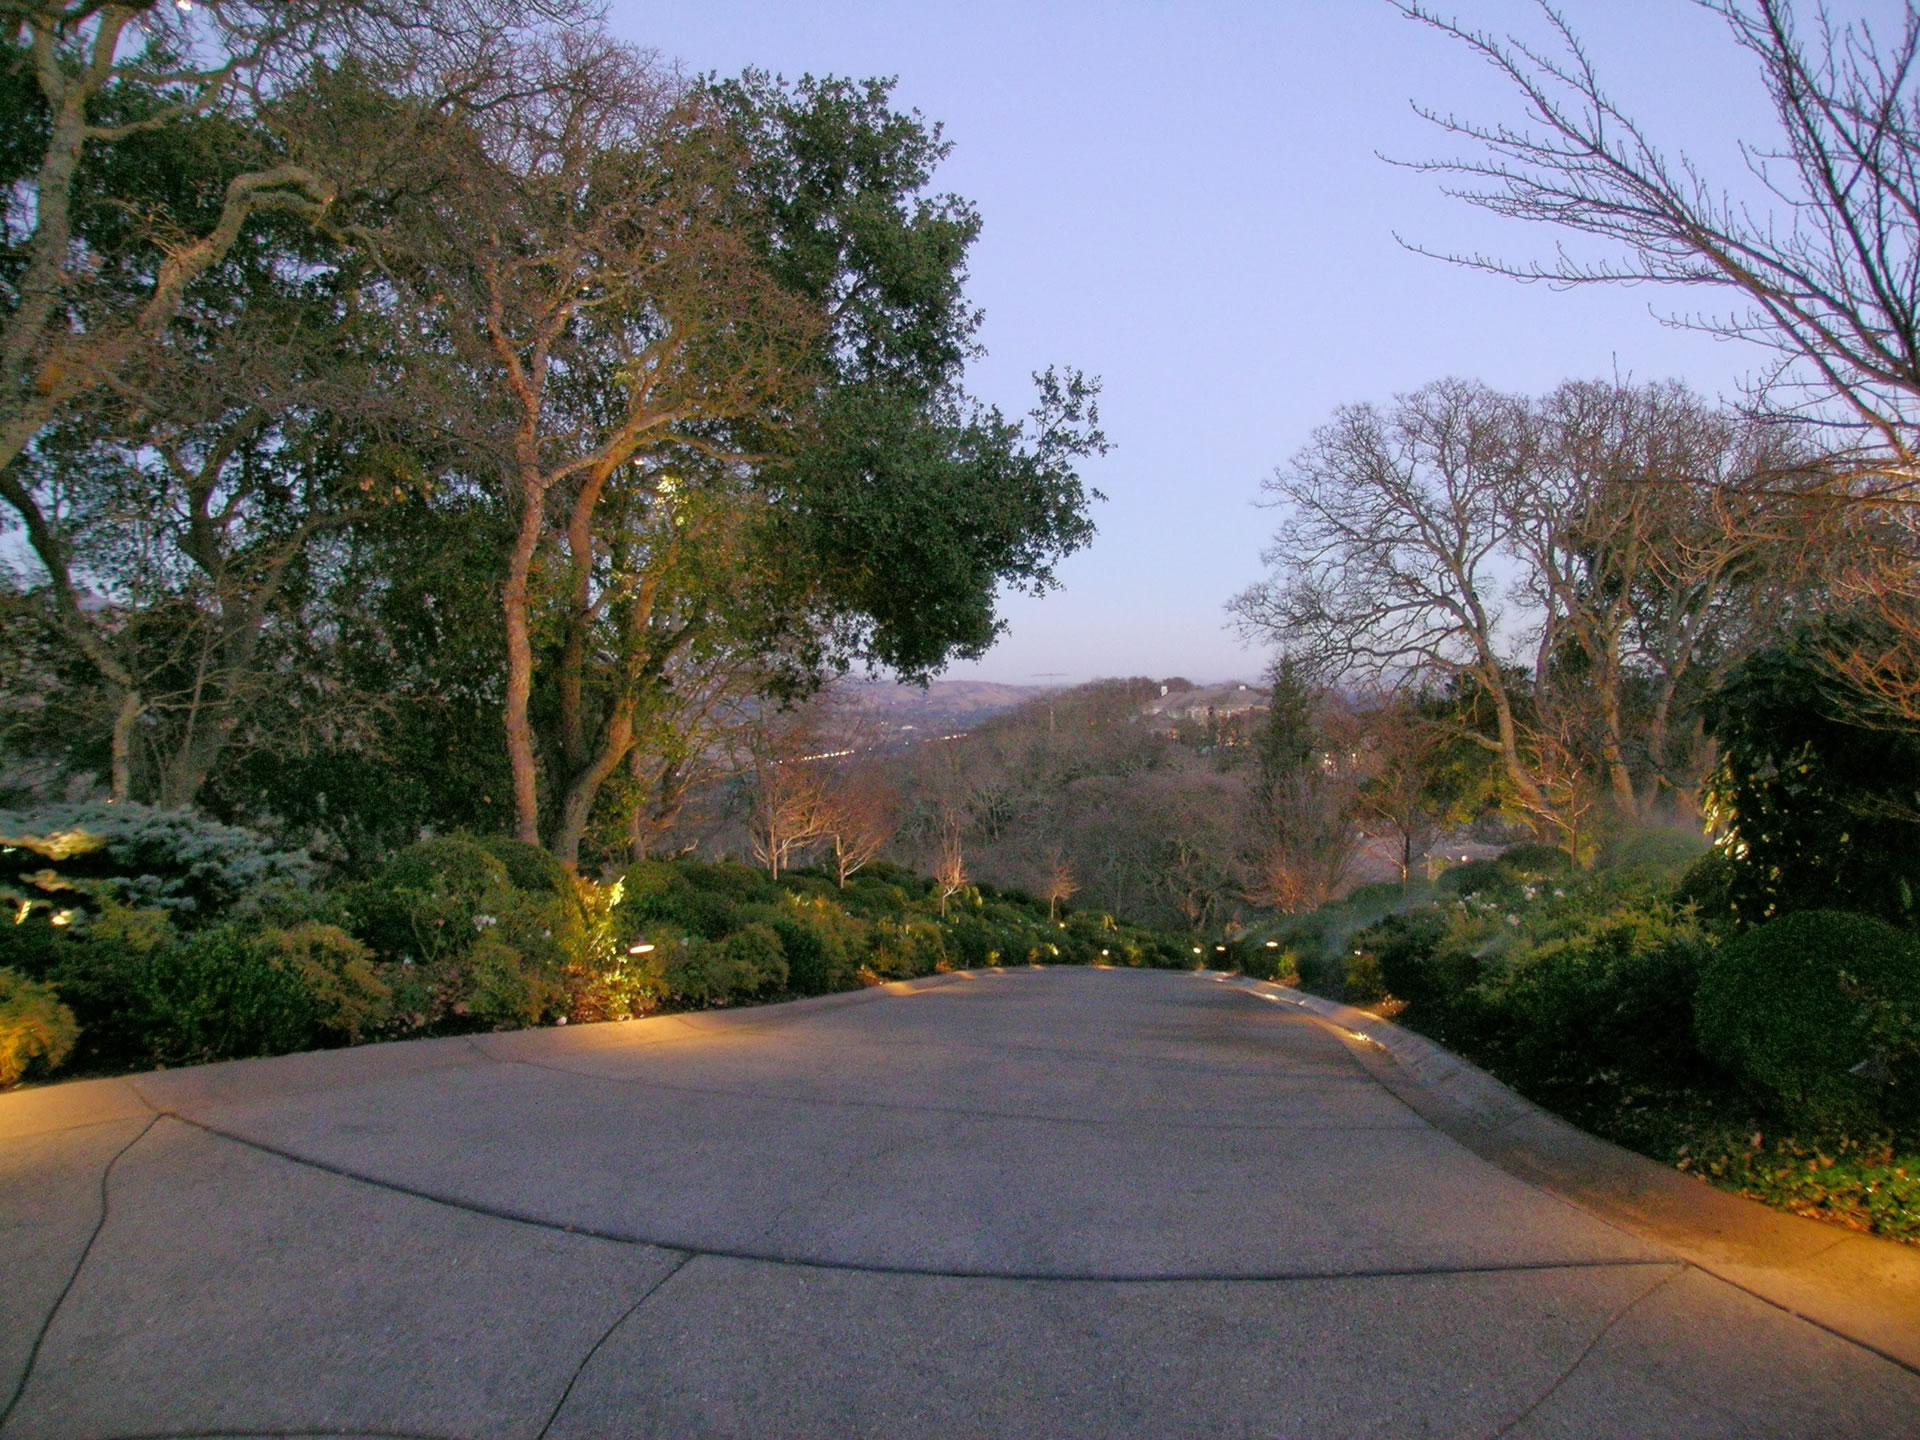 Landscape Lighting Led Conversion : Illumination landscape lighting a c special projects architectural